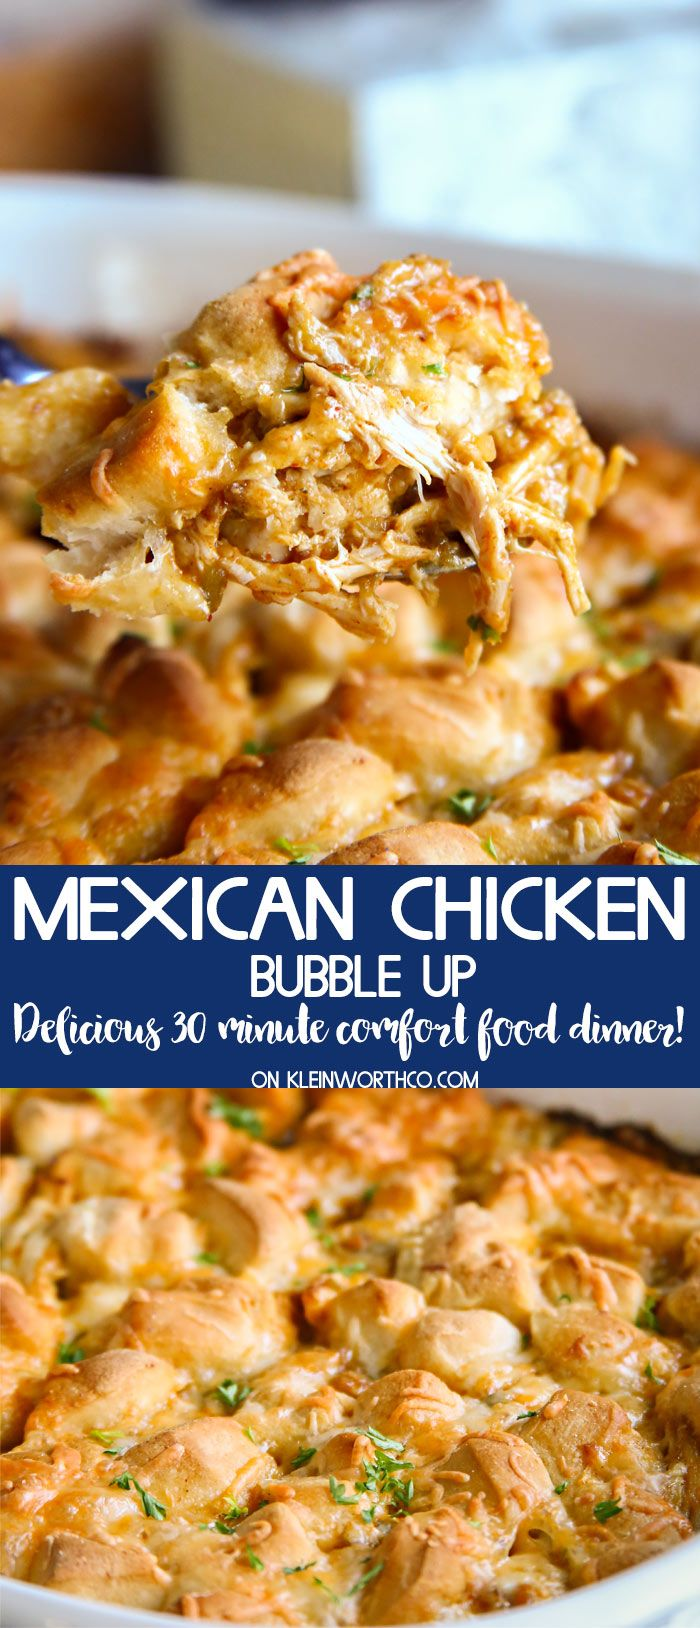 Need a quick easy dinner mexican chicken bubble up casserole is a need a quick easy dinner mexican chicken bubble up casserole is a quick 30 minute chicken dinner recipe that is so easy to make perfect comfort forumfinder Images